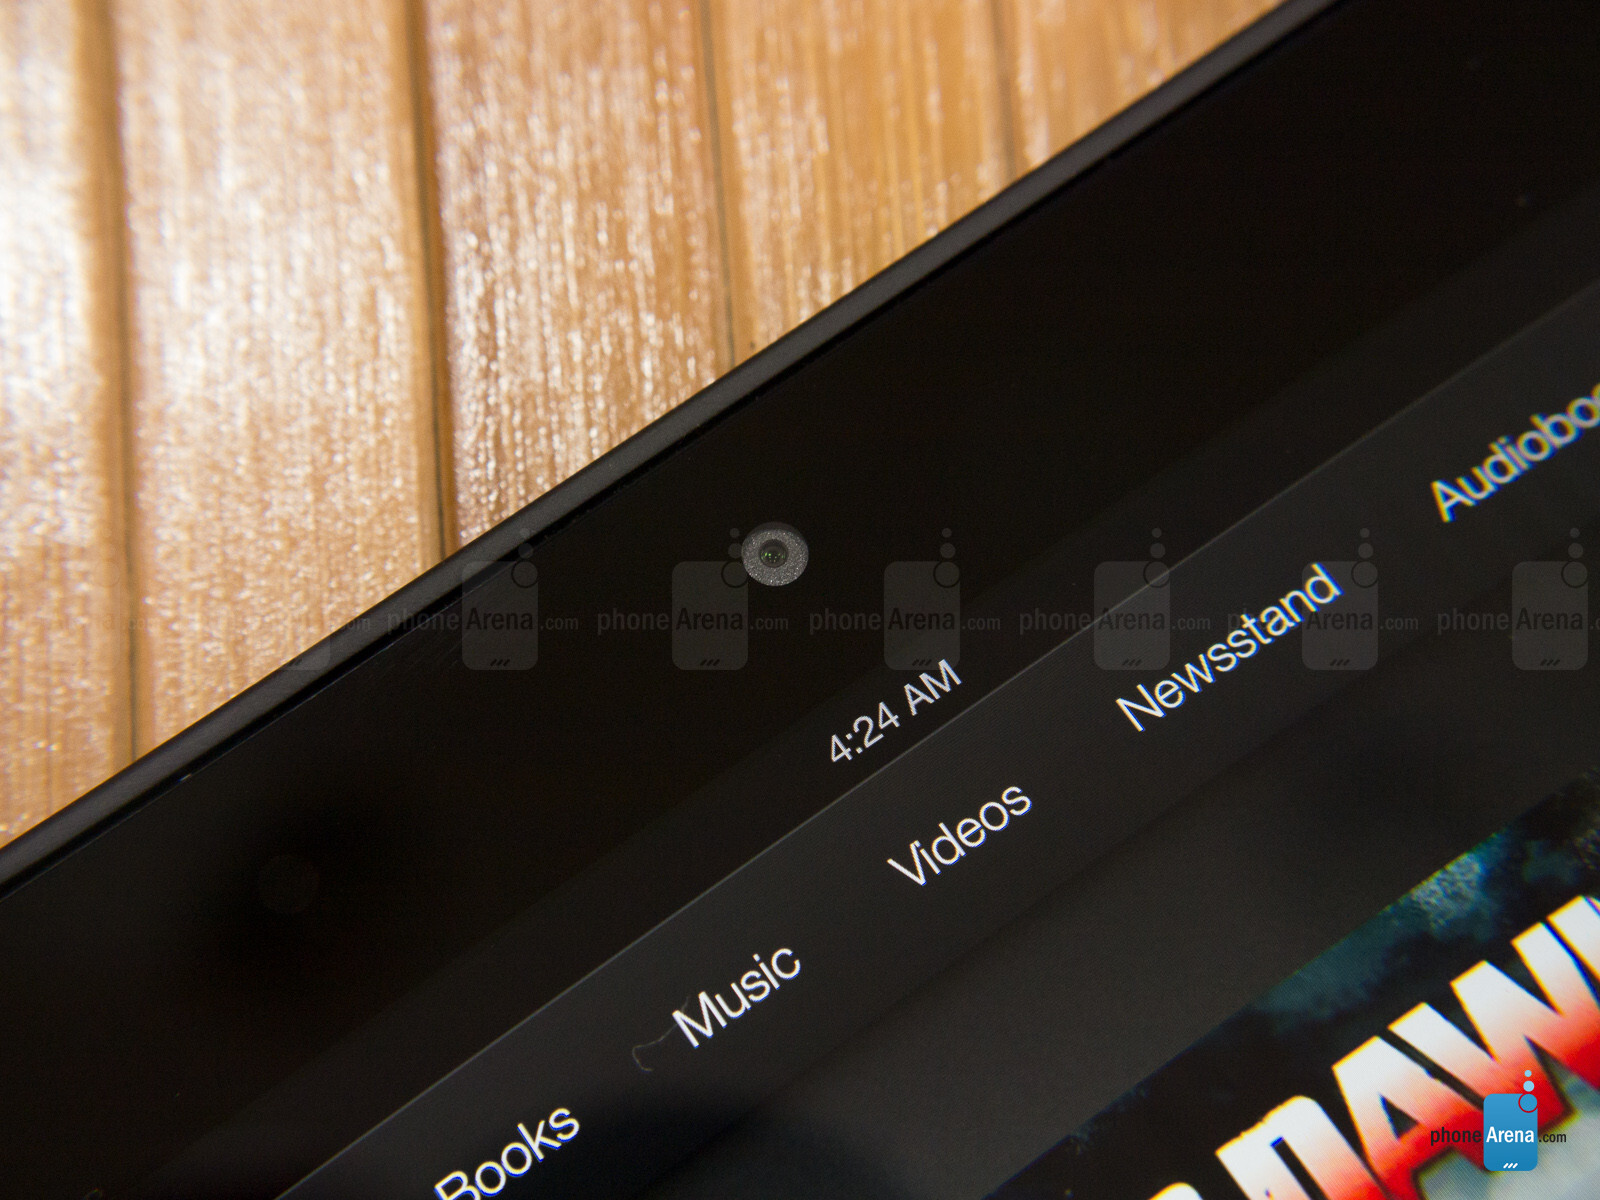 Kindle Vs Sony Reader: Amazon Kindle Fire HDX 8.9 Review